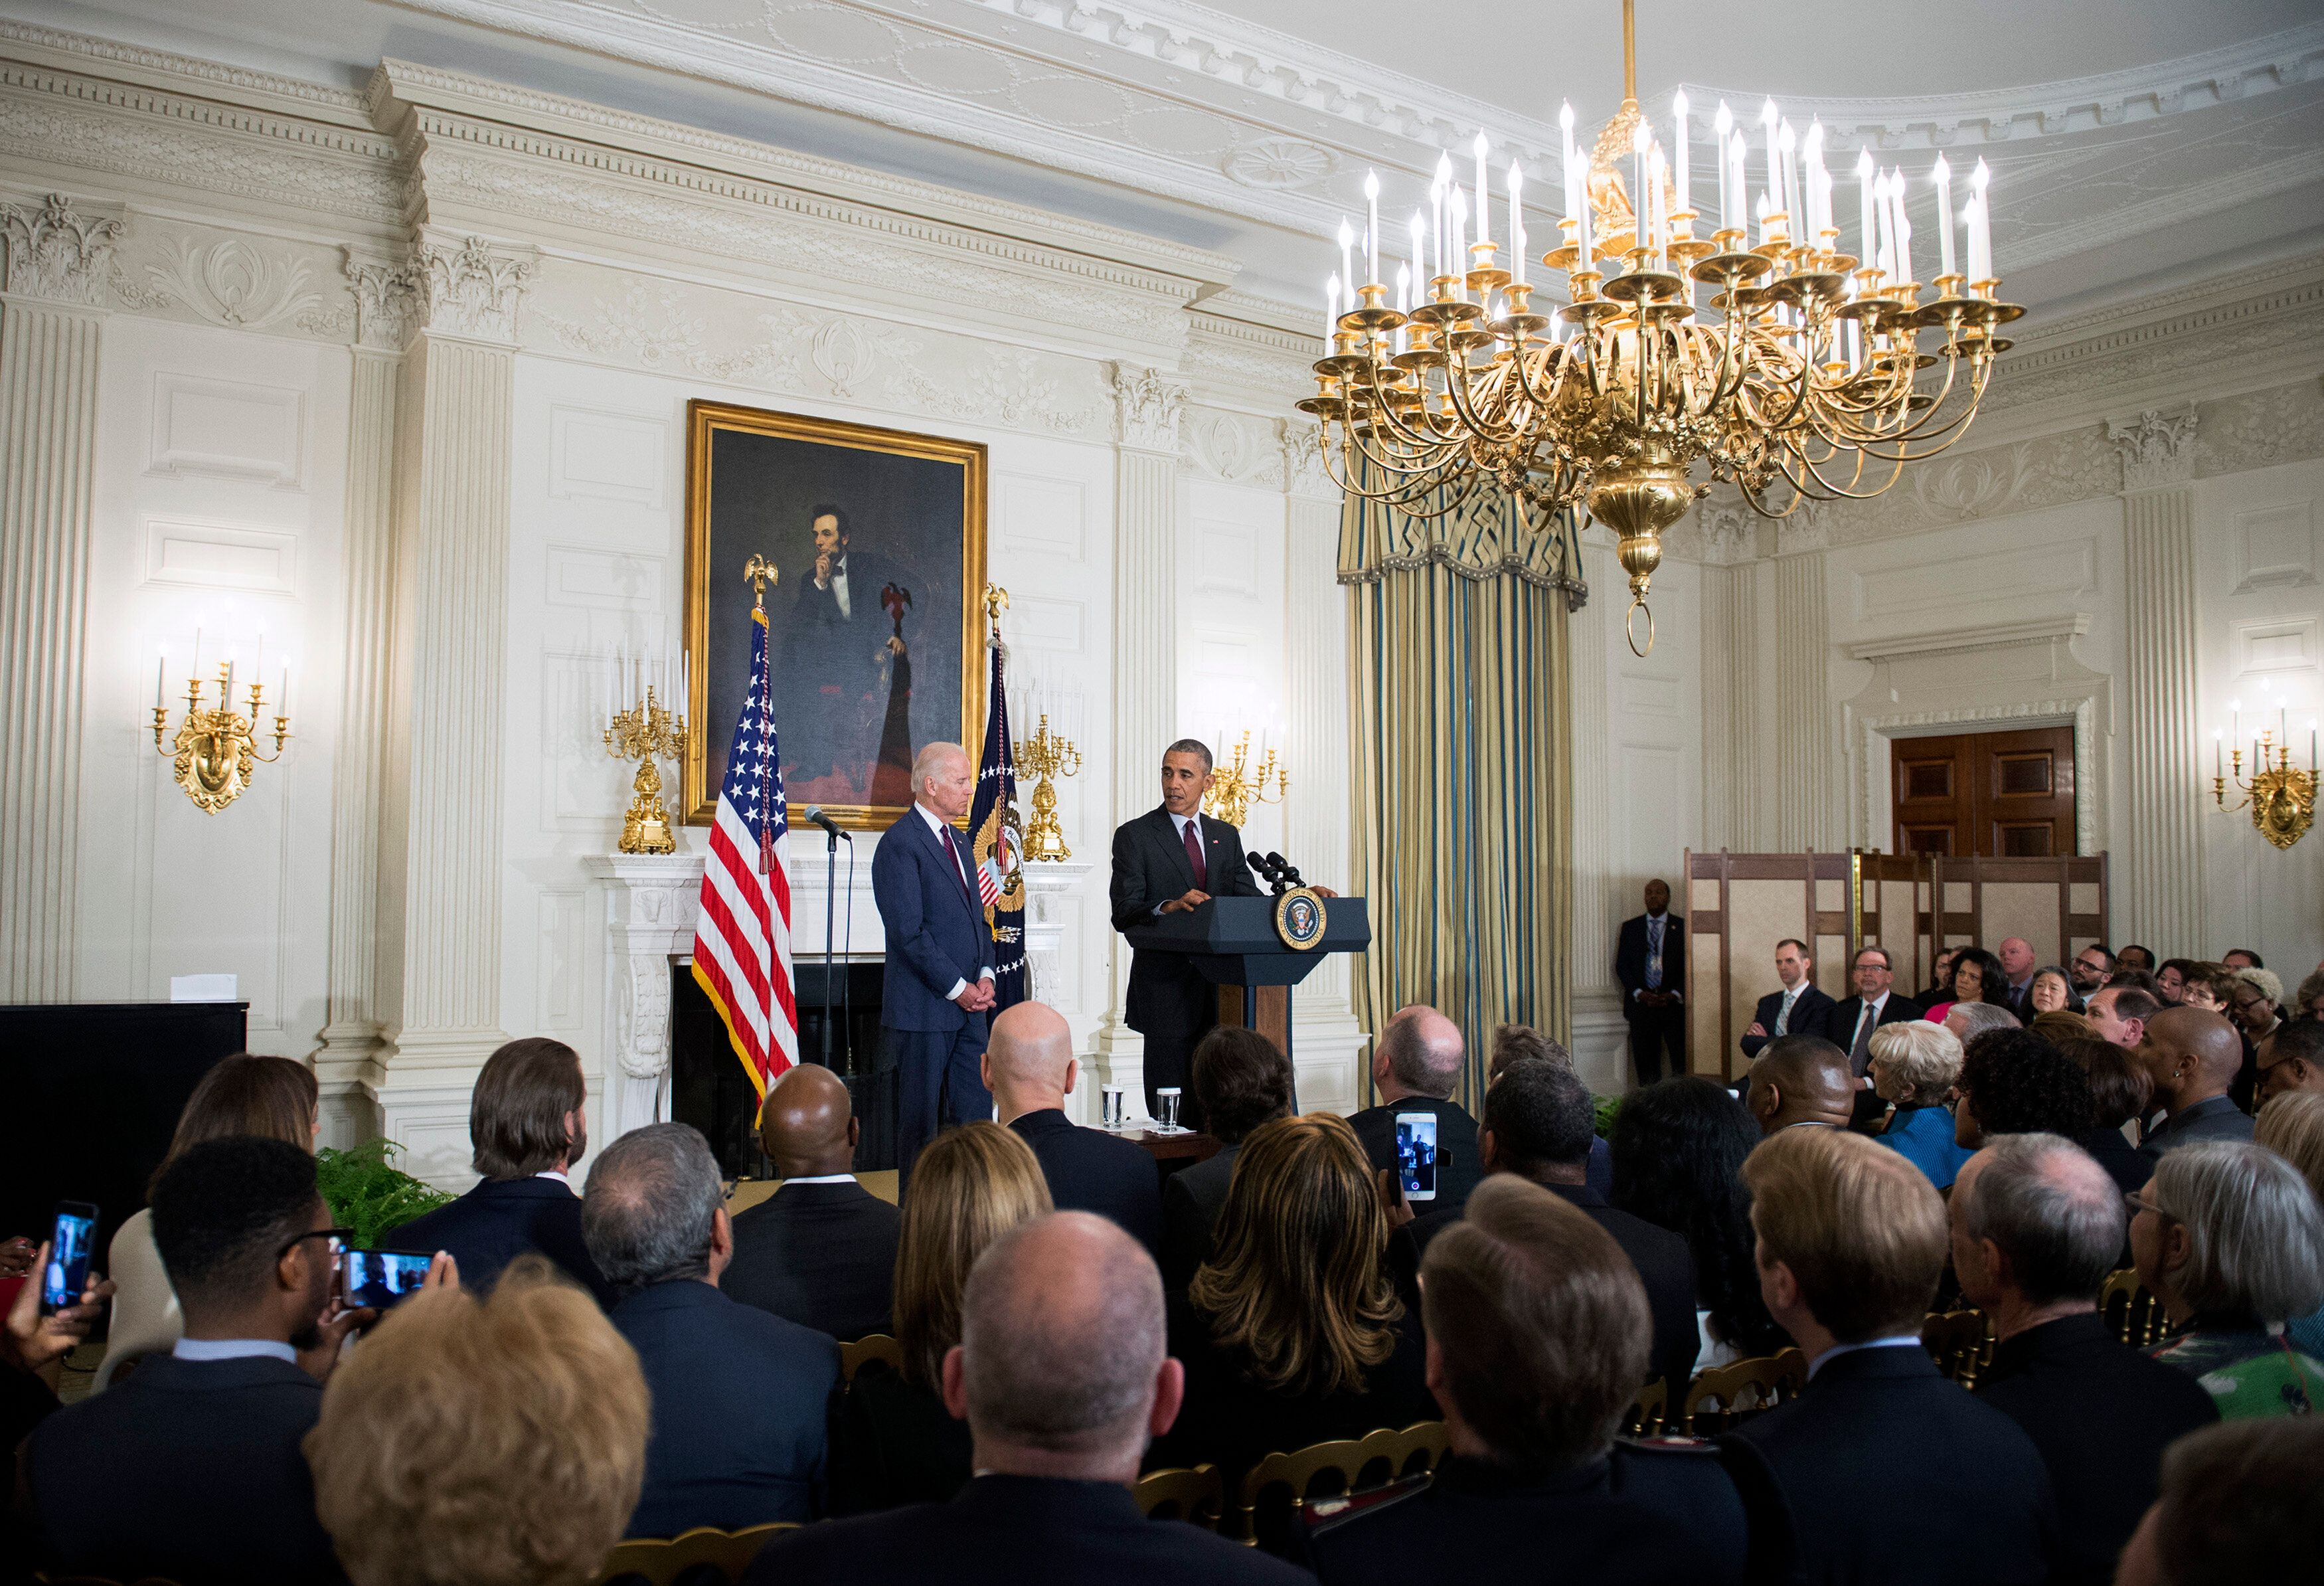 President Barack Obama, joined by then-Vice President Joe Biden, delivers remarks at an Easter Prayer Breakfast at the White